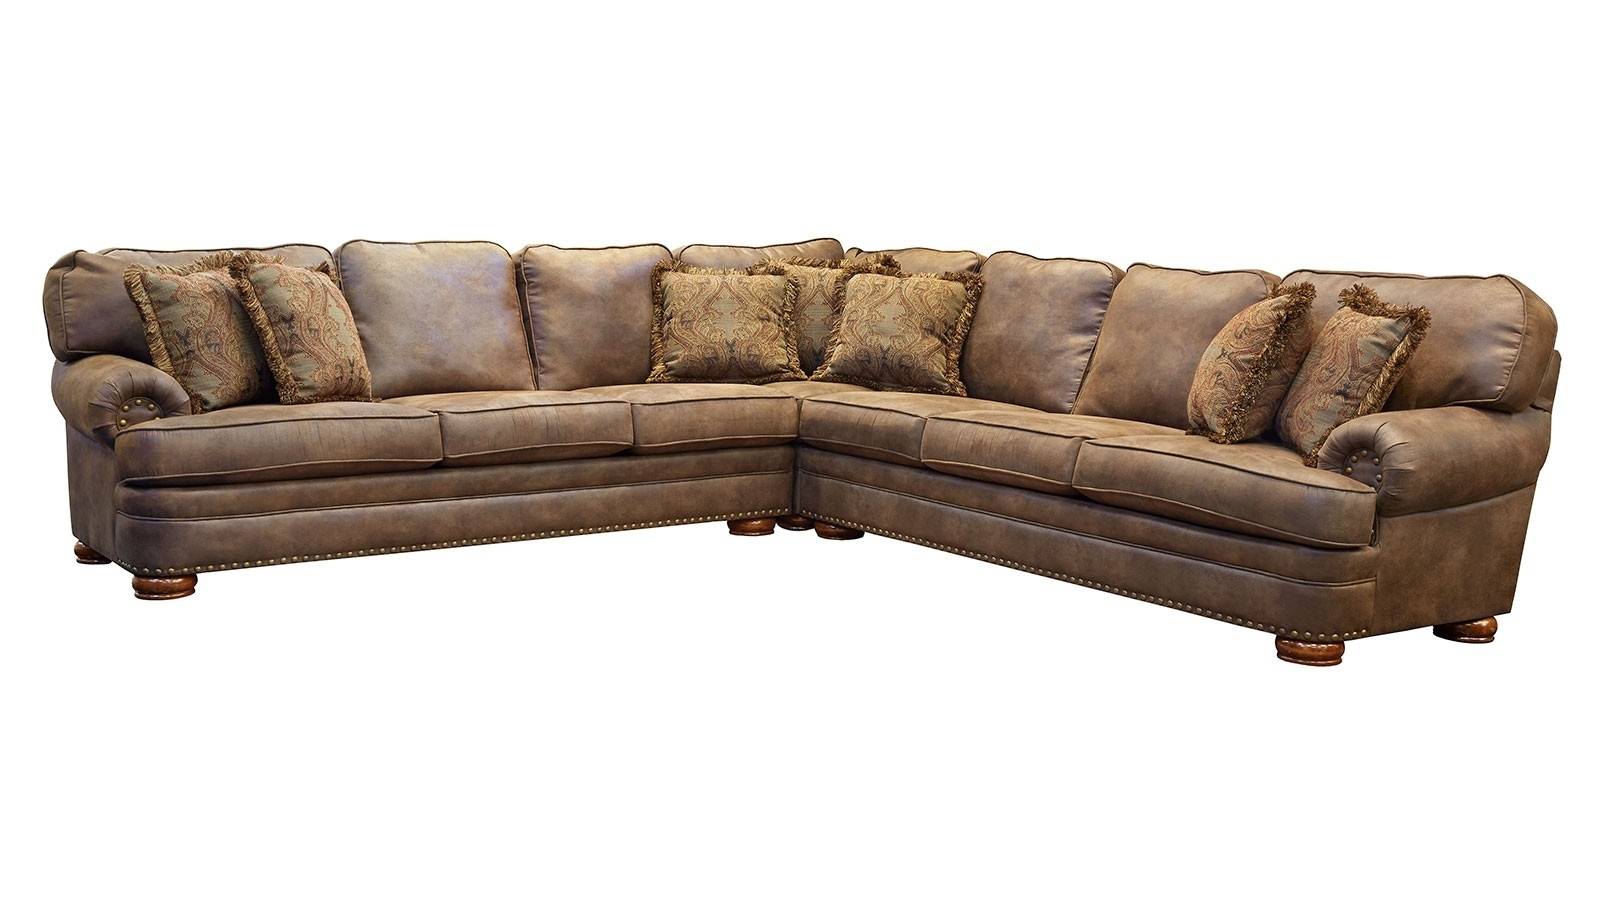 El Paso Sectional | Gallery Furniture With Gallery Furniture Sectional Sofas (Photo 5 of 10)